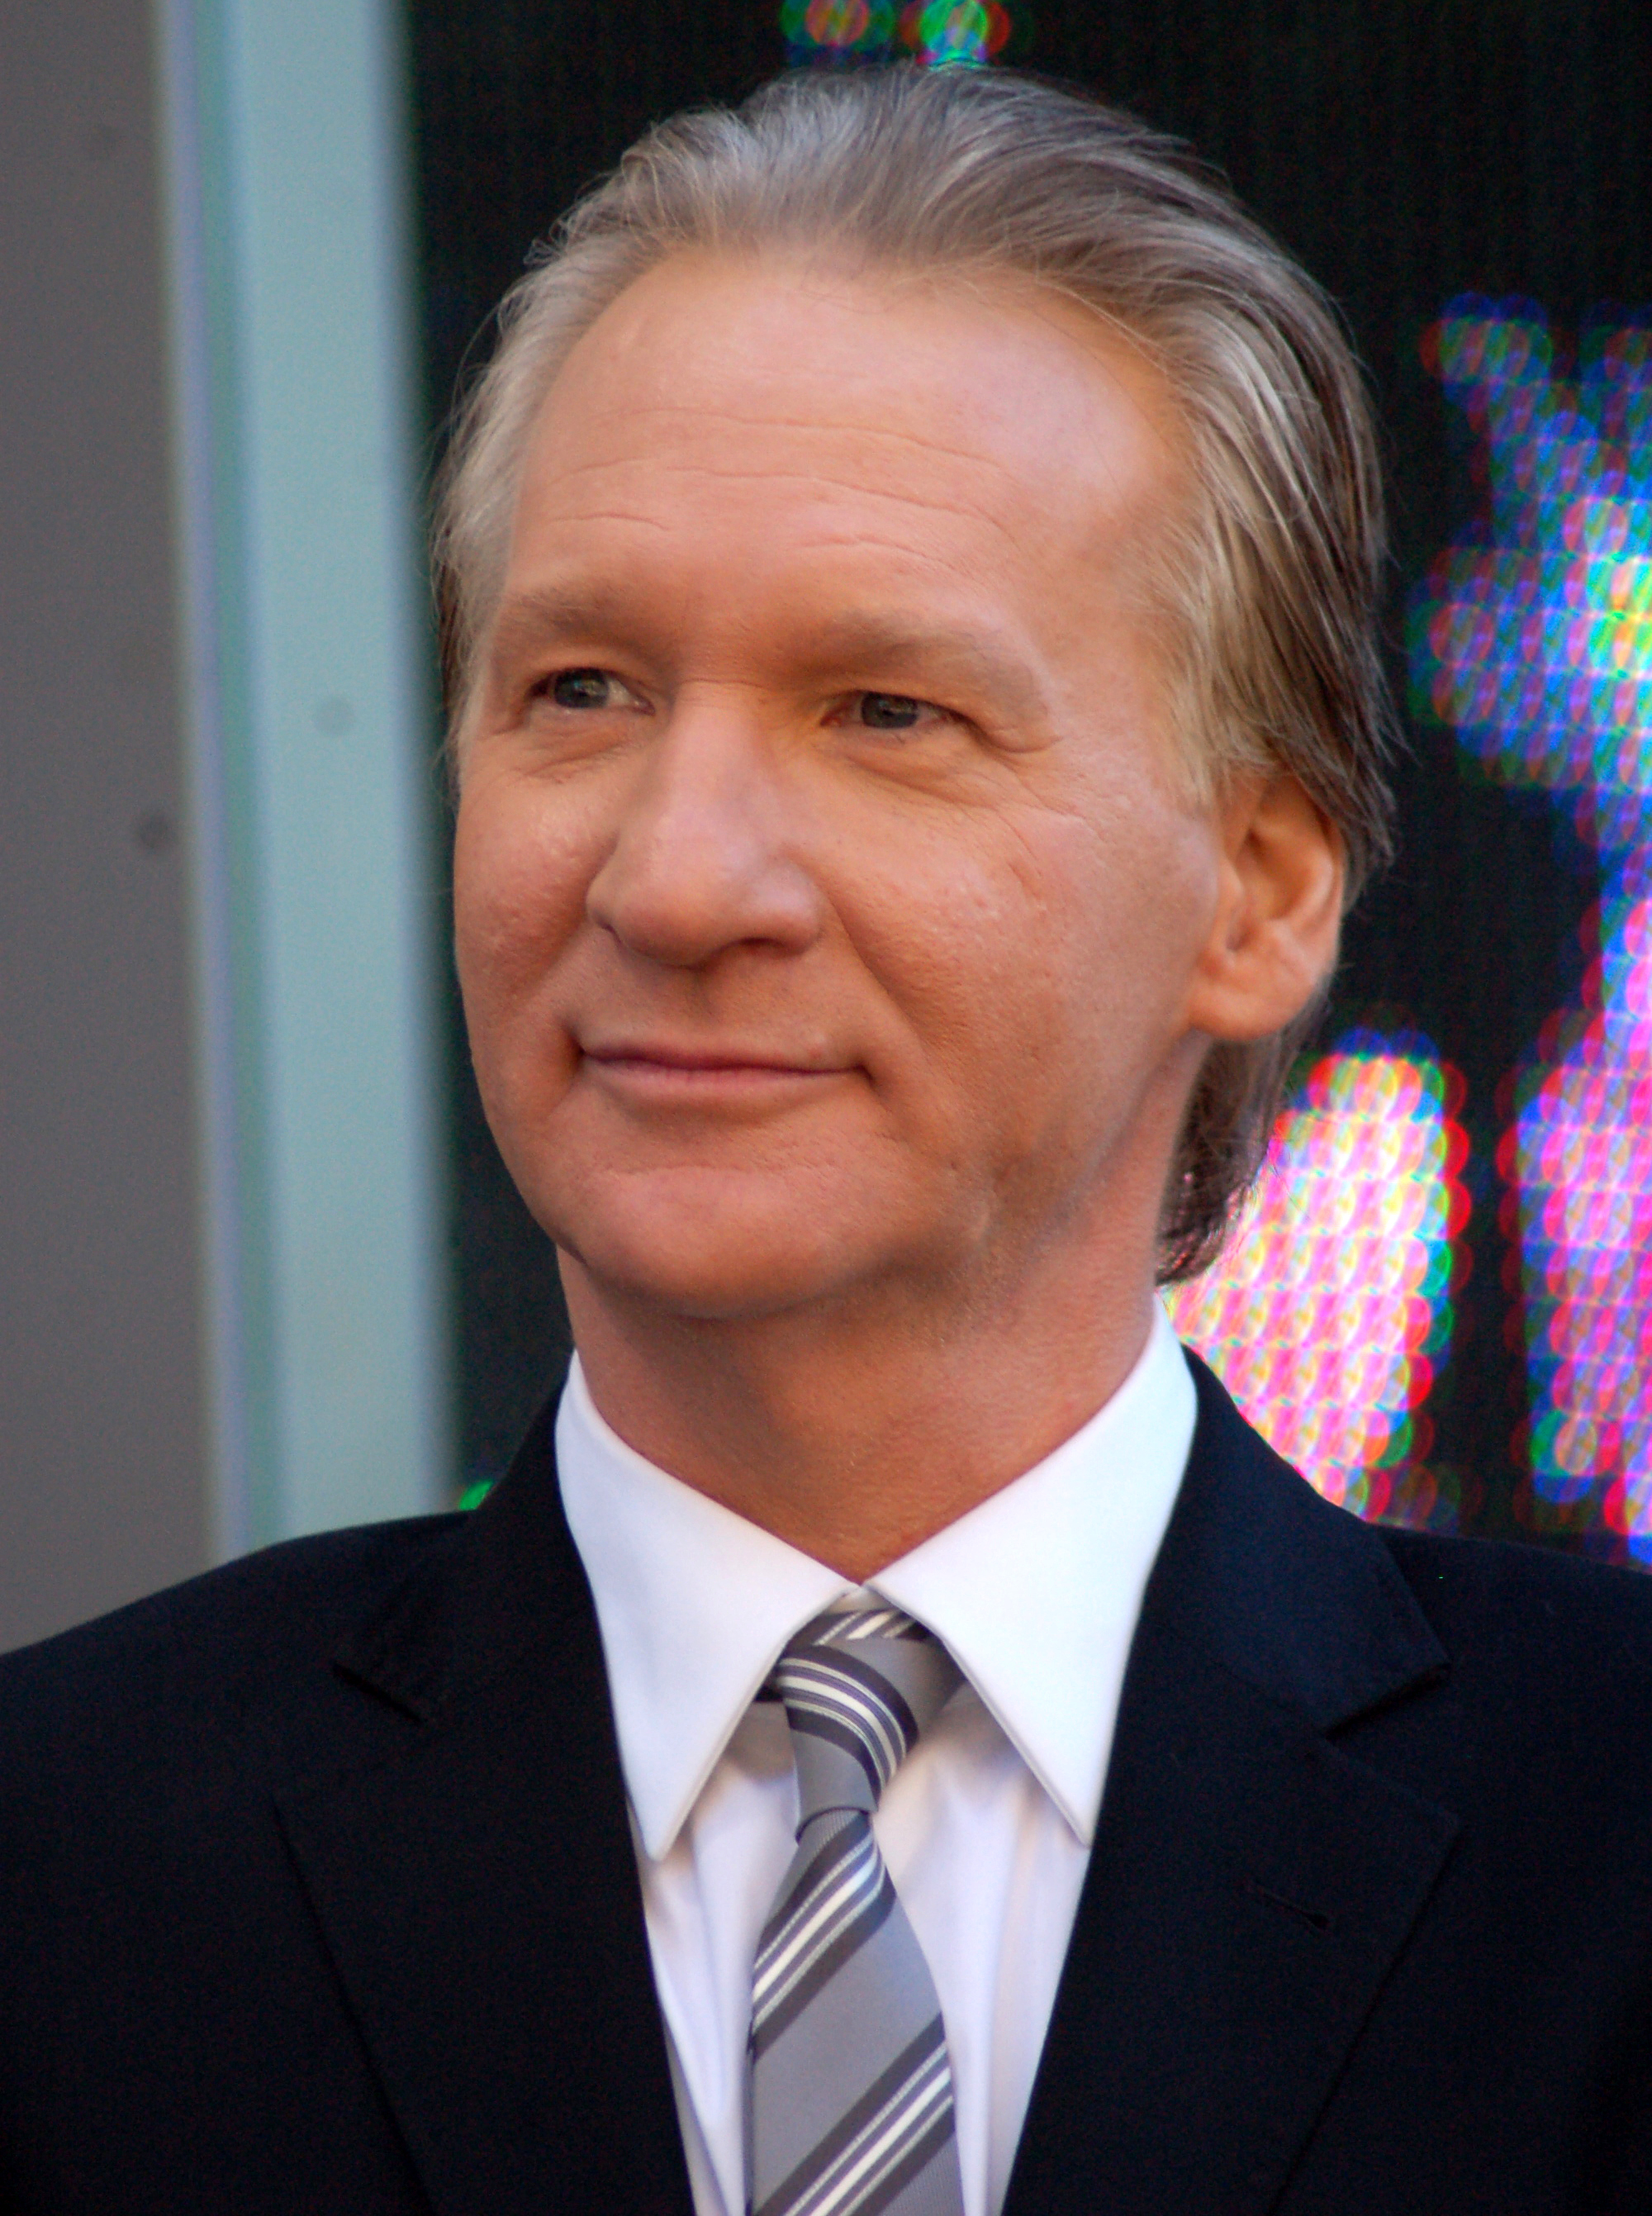 Portrait of Bill Maher